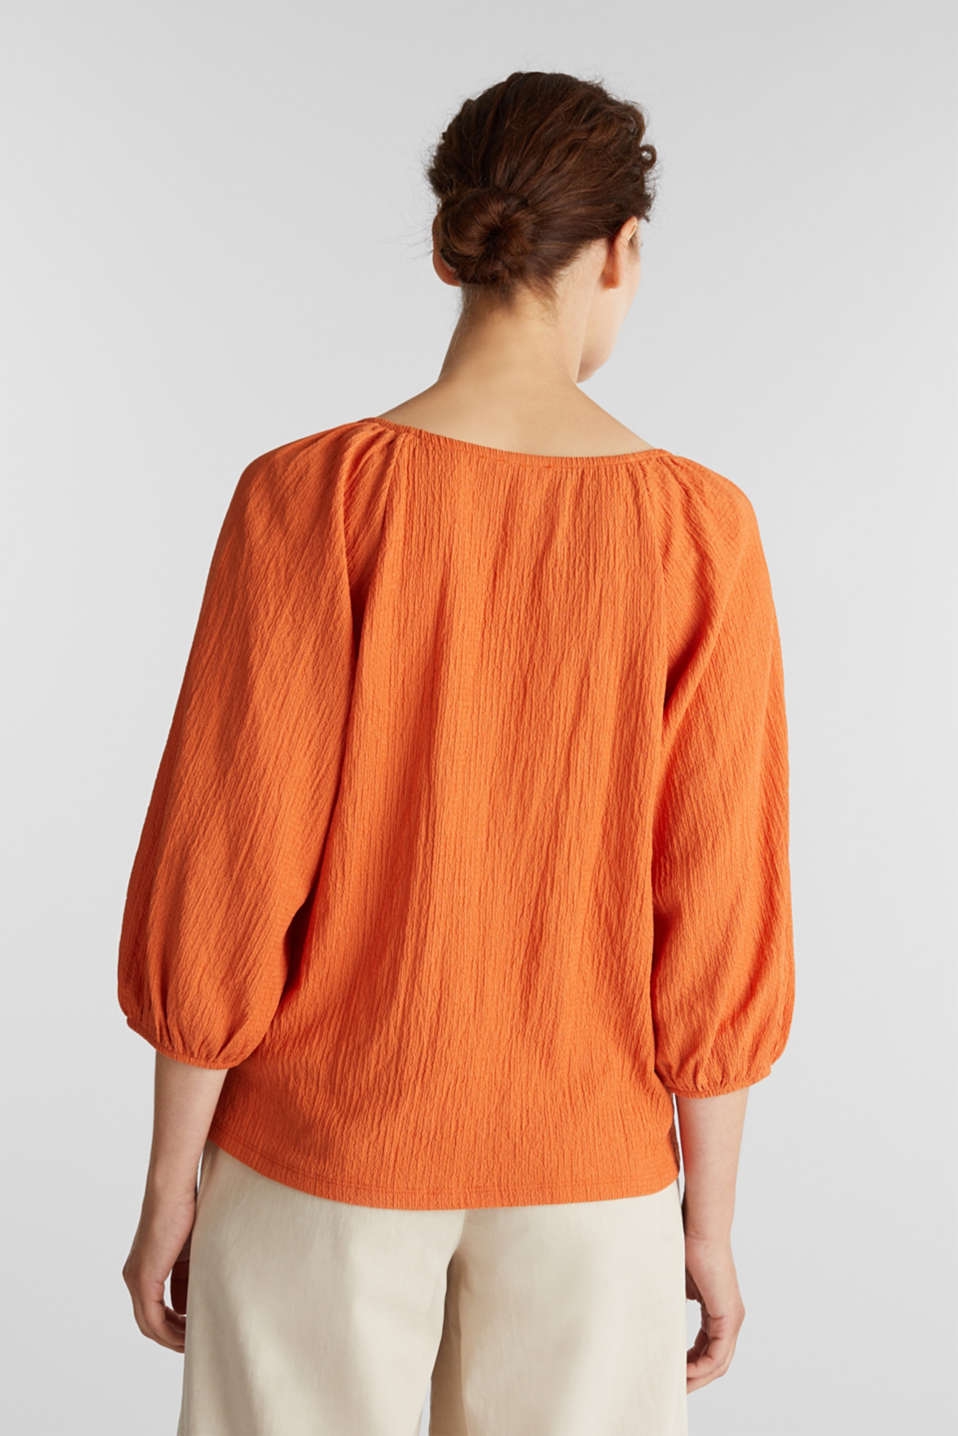 Textured blouse top, recycled, RUST ORANGE, detail image number 3